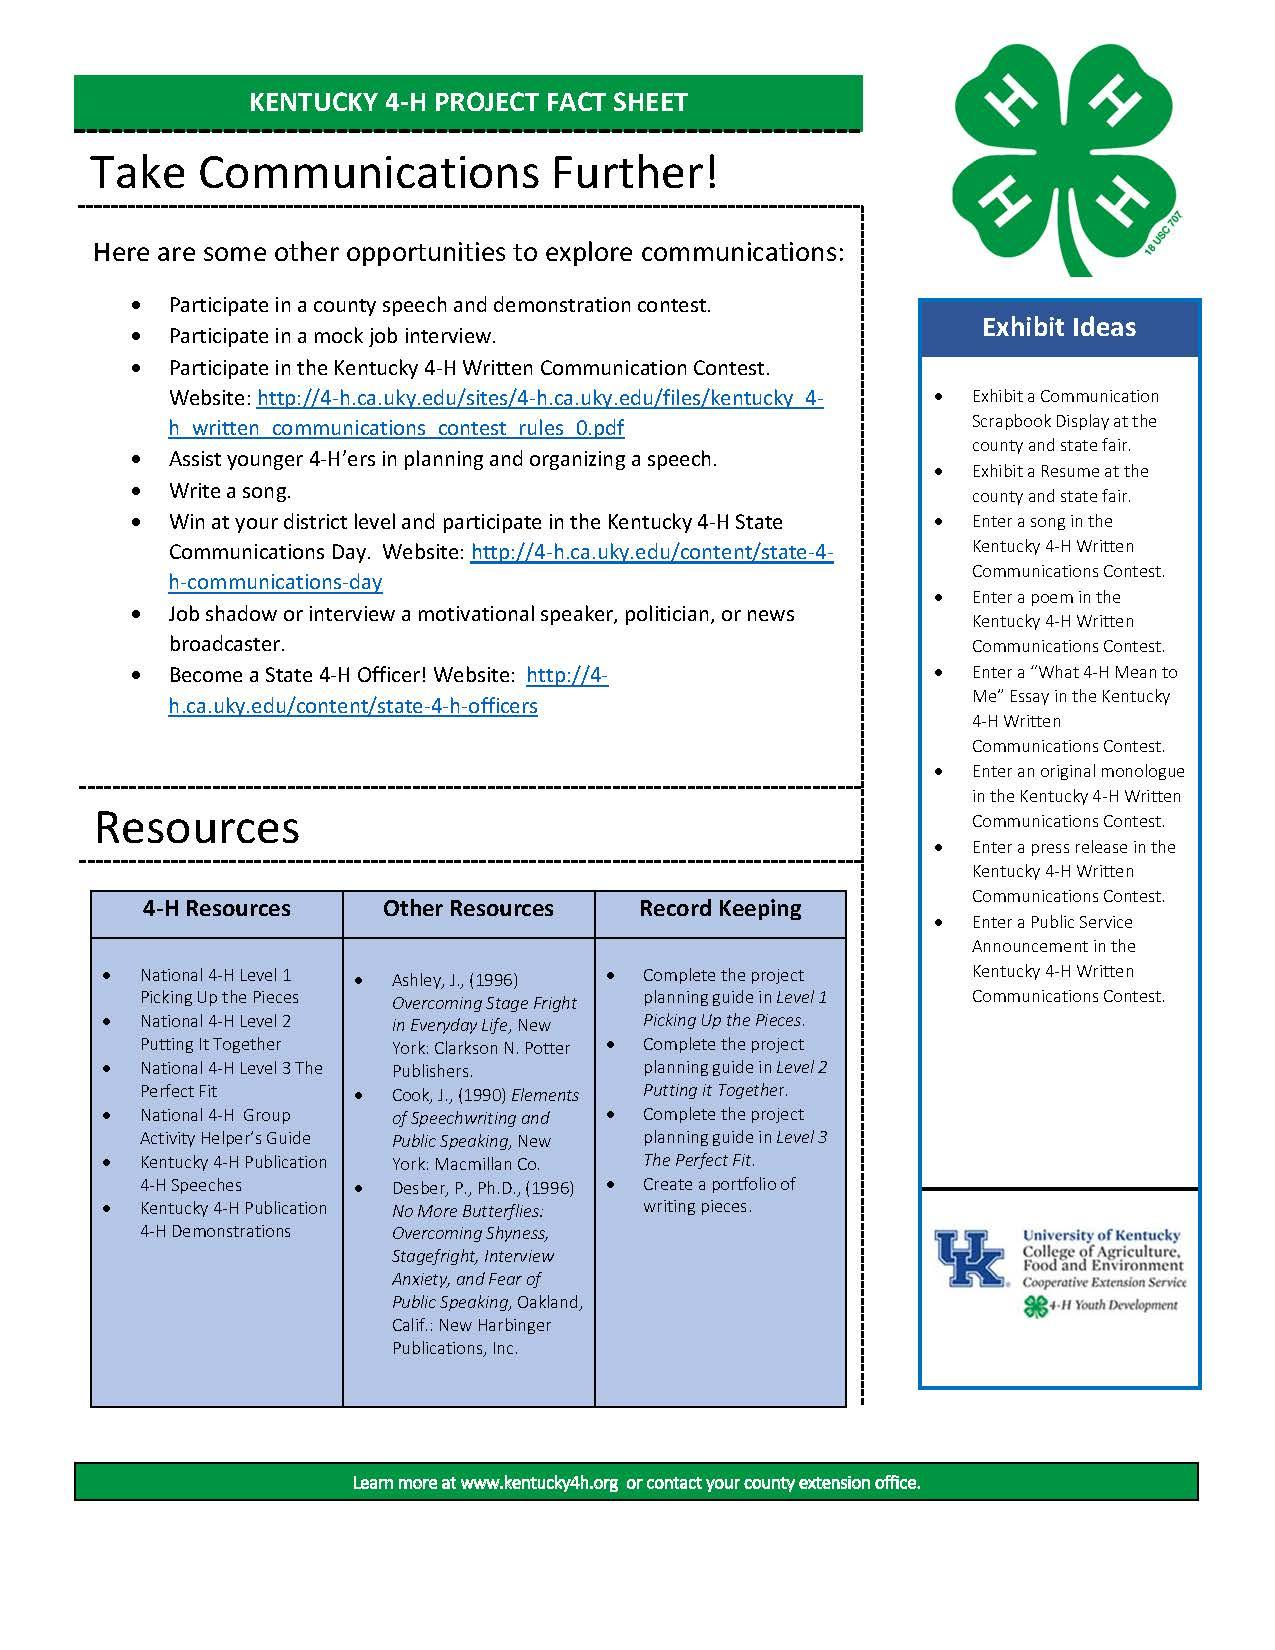 4-H Communication Overview 2018